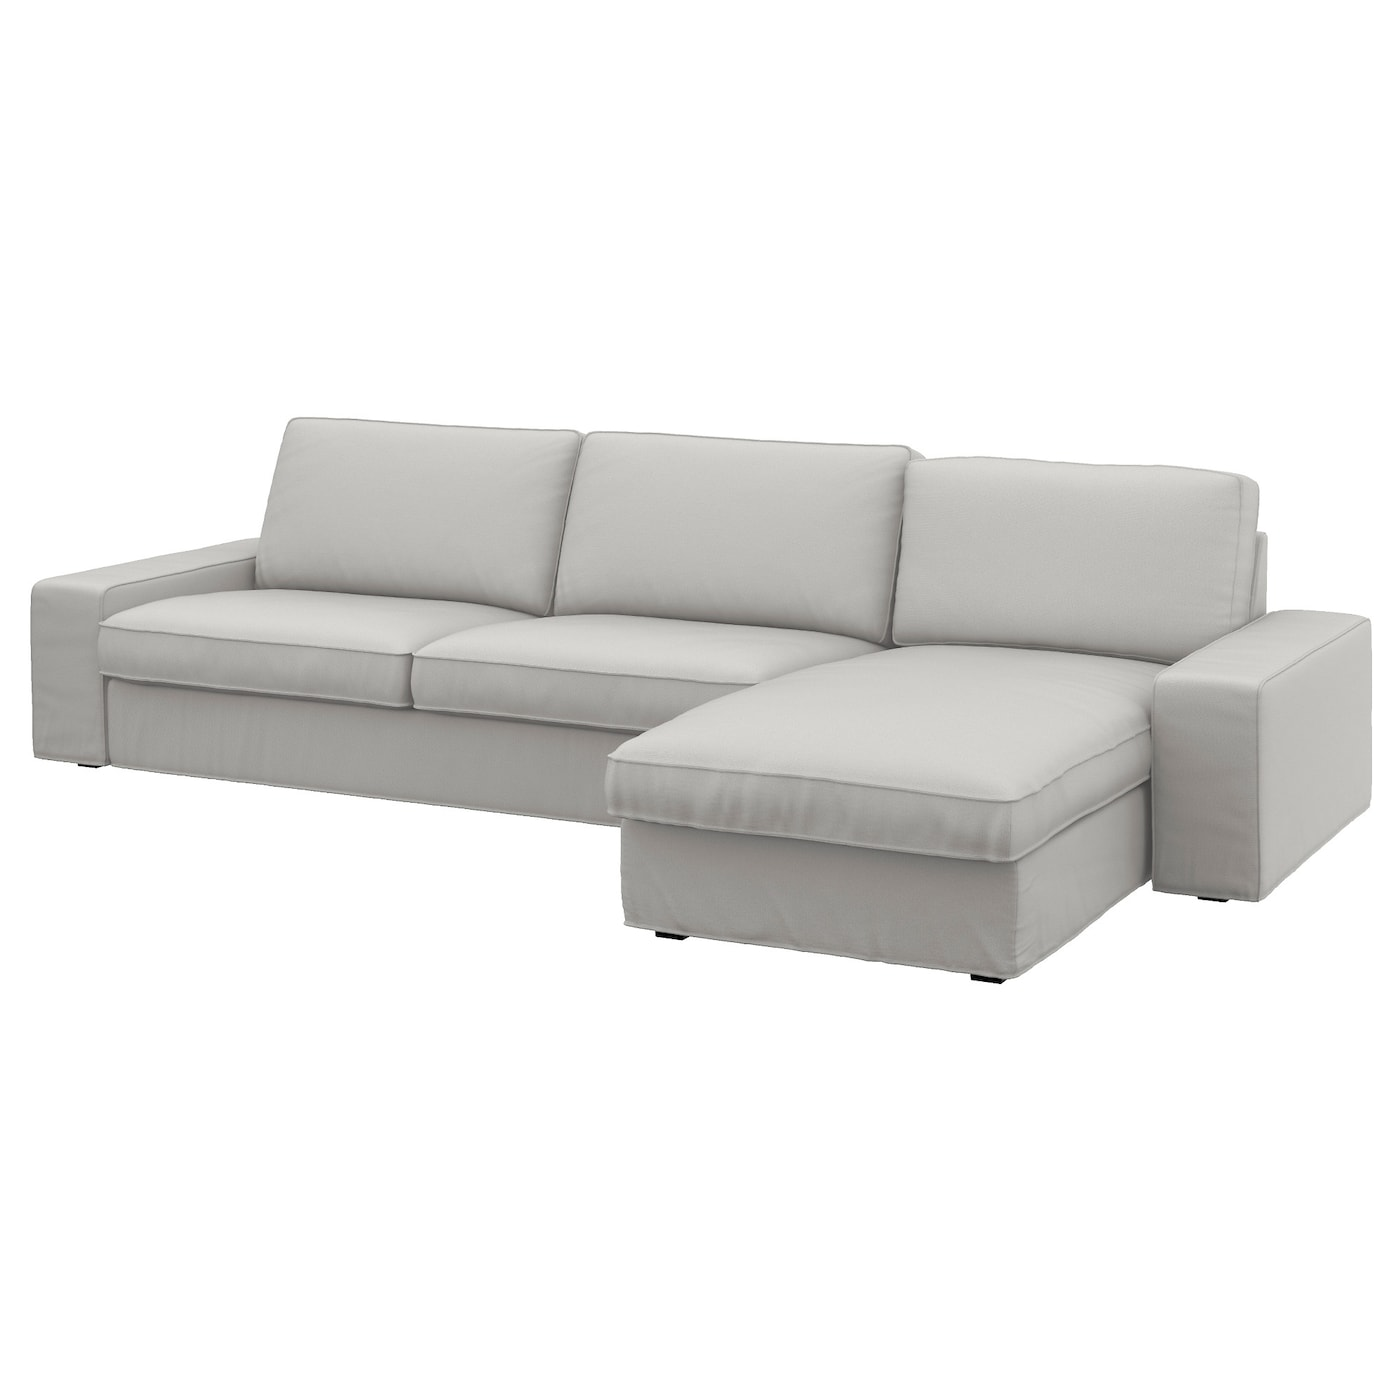 kivik three seat sofa and chaise longue ramna light grey. Black Bedroom Furniture Sets. Home Design Ideas